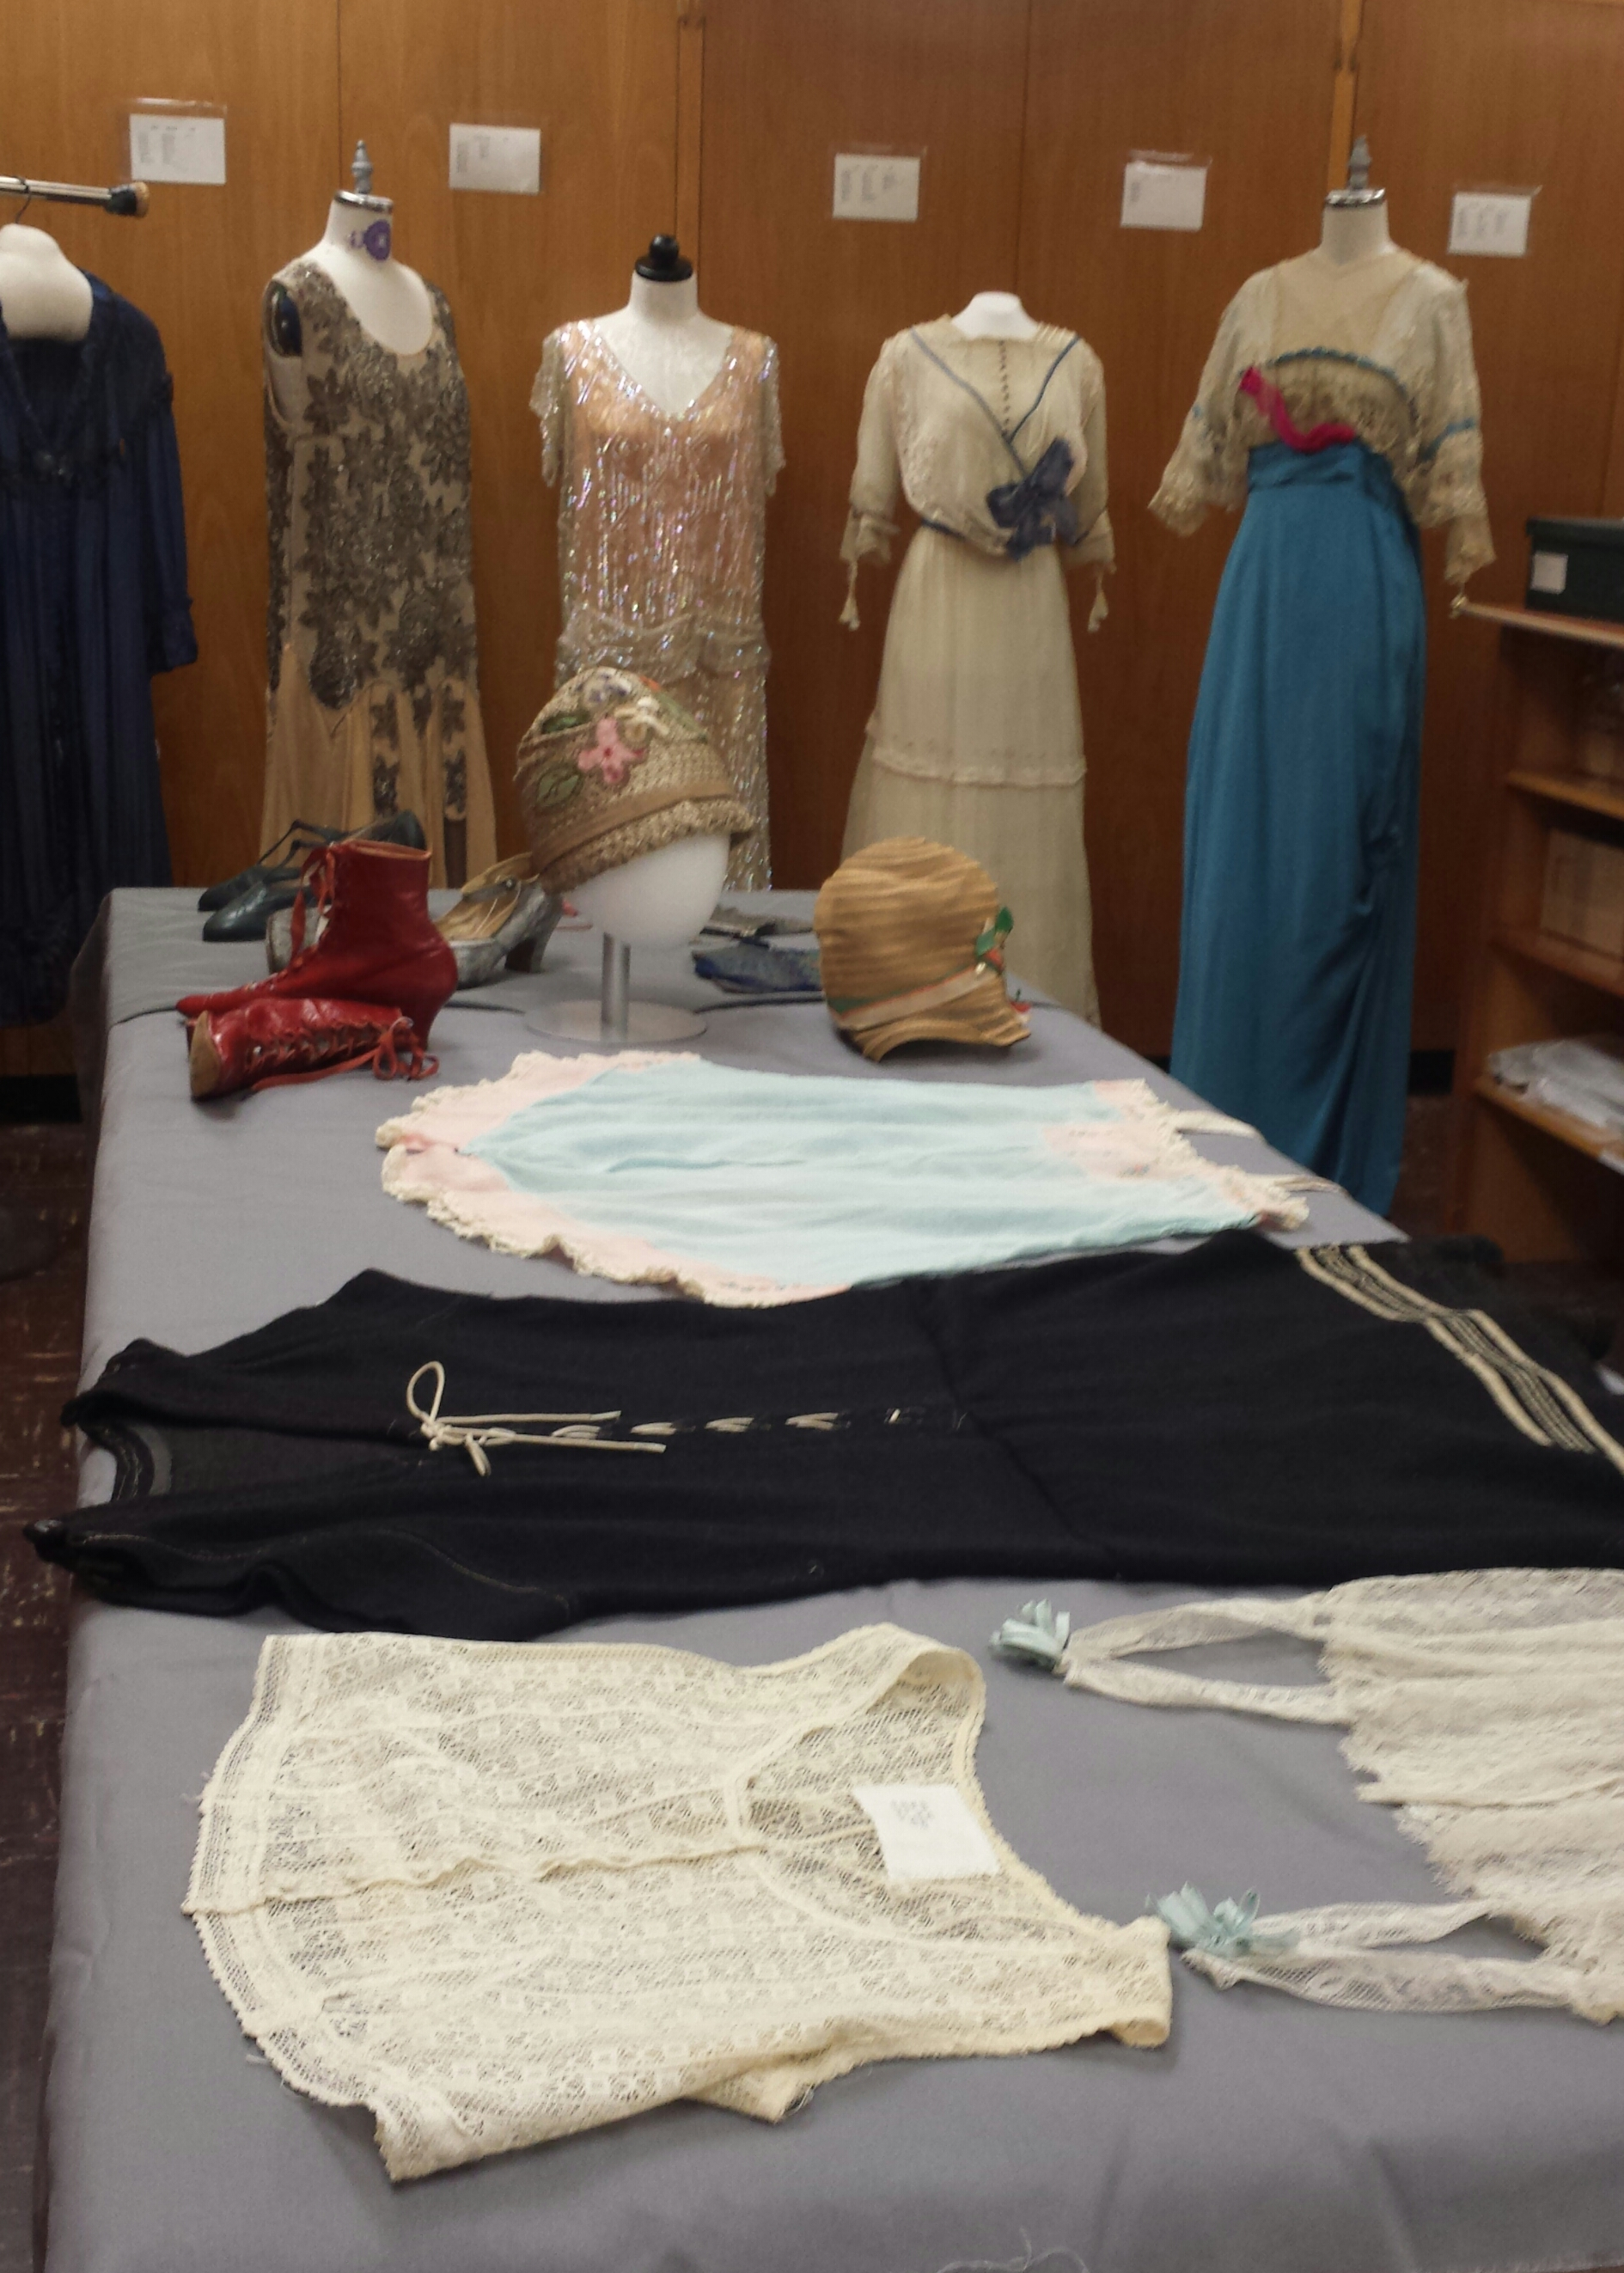 Dress from Historic and Cultural Textile and Apparel Collection